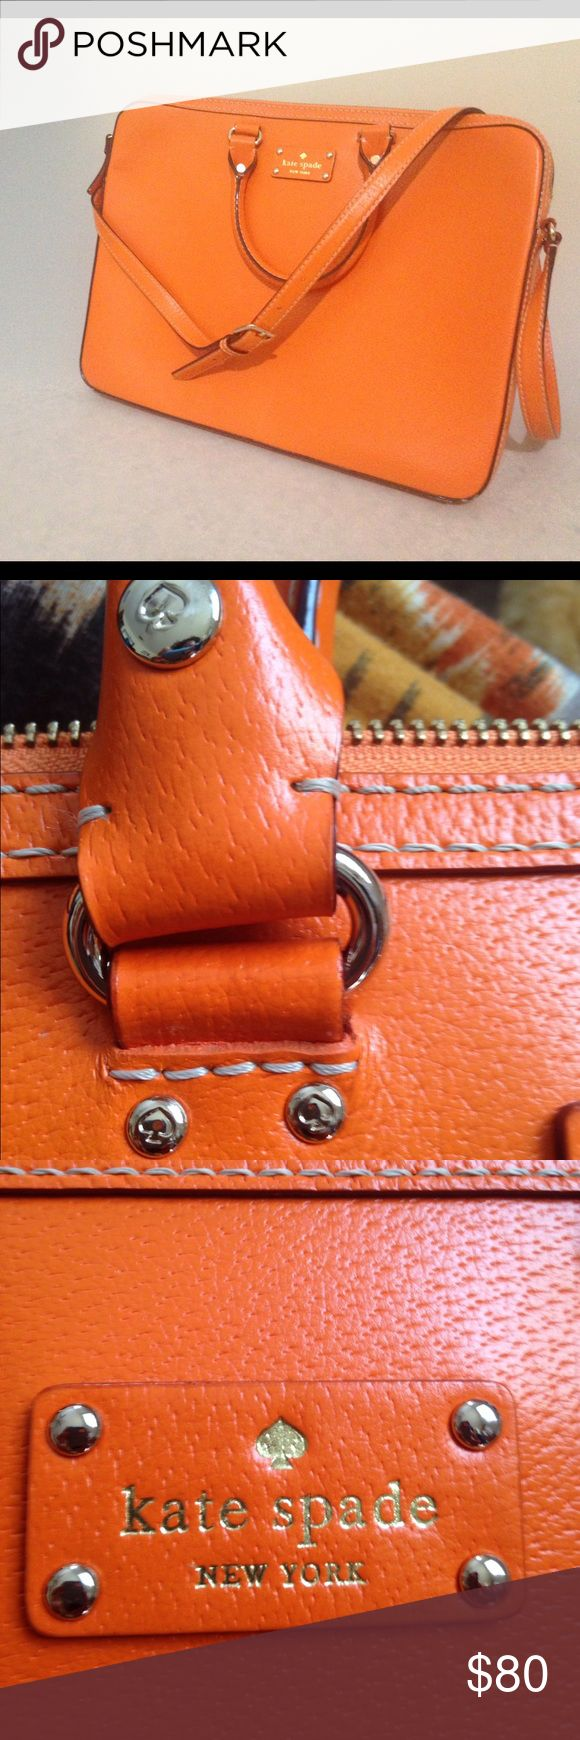 Kate spade lap top cross body carrying case. 12x16 Kate spade orange laptop carrying case with adjustable strap and padded sides. There is little wear show. Bearly noticeable spots on the back of the bag and tiny stain inside. See pic. kate spade Bags Laptop Bags